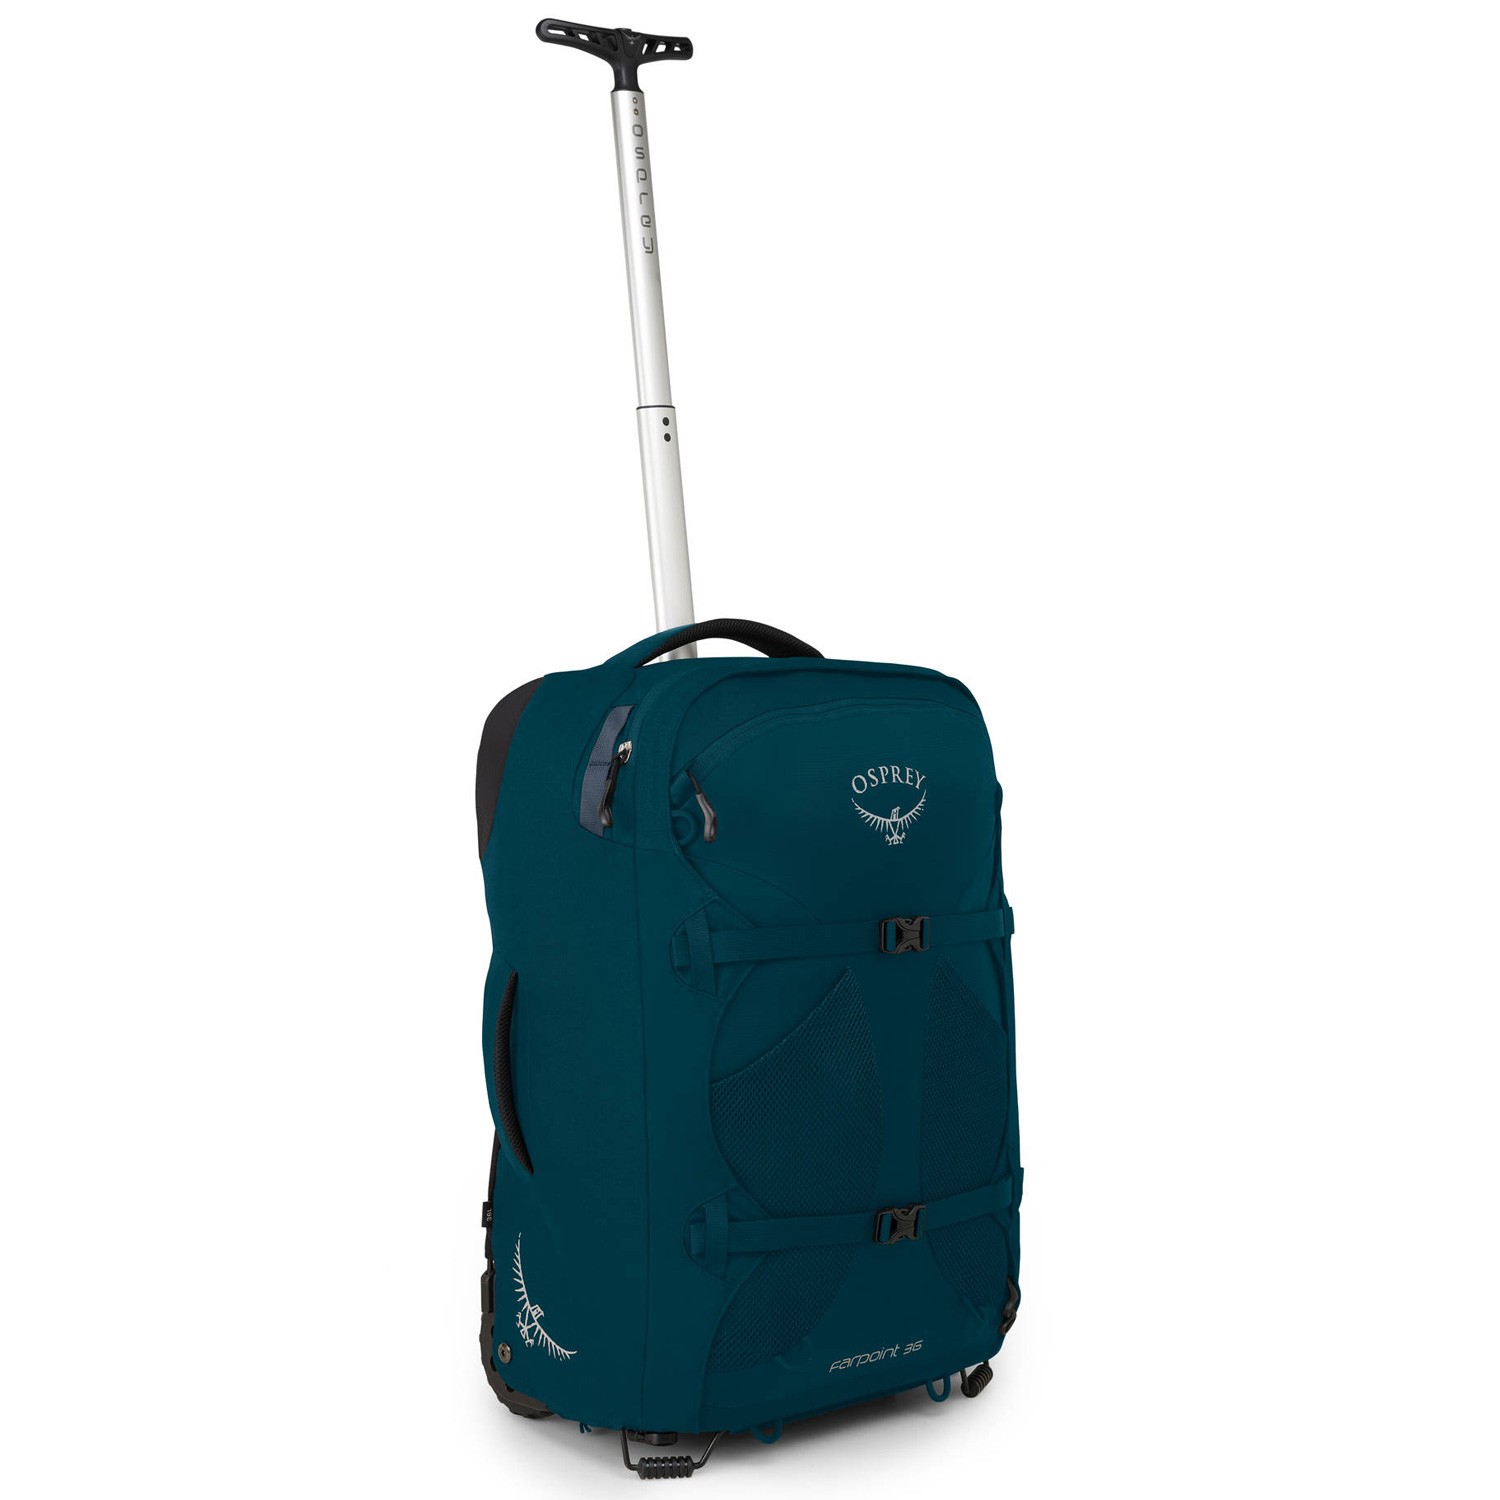 Picture of Osprey Farpoint Wheels 36 - Travel Bag - Petrol Blue